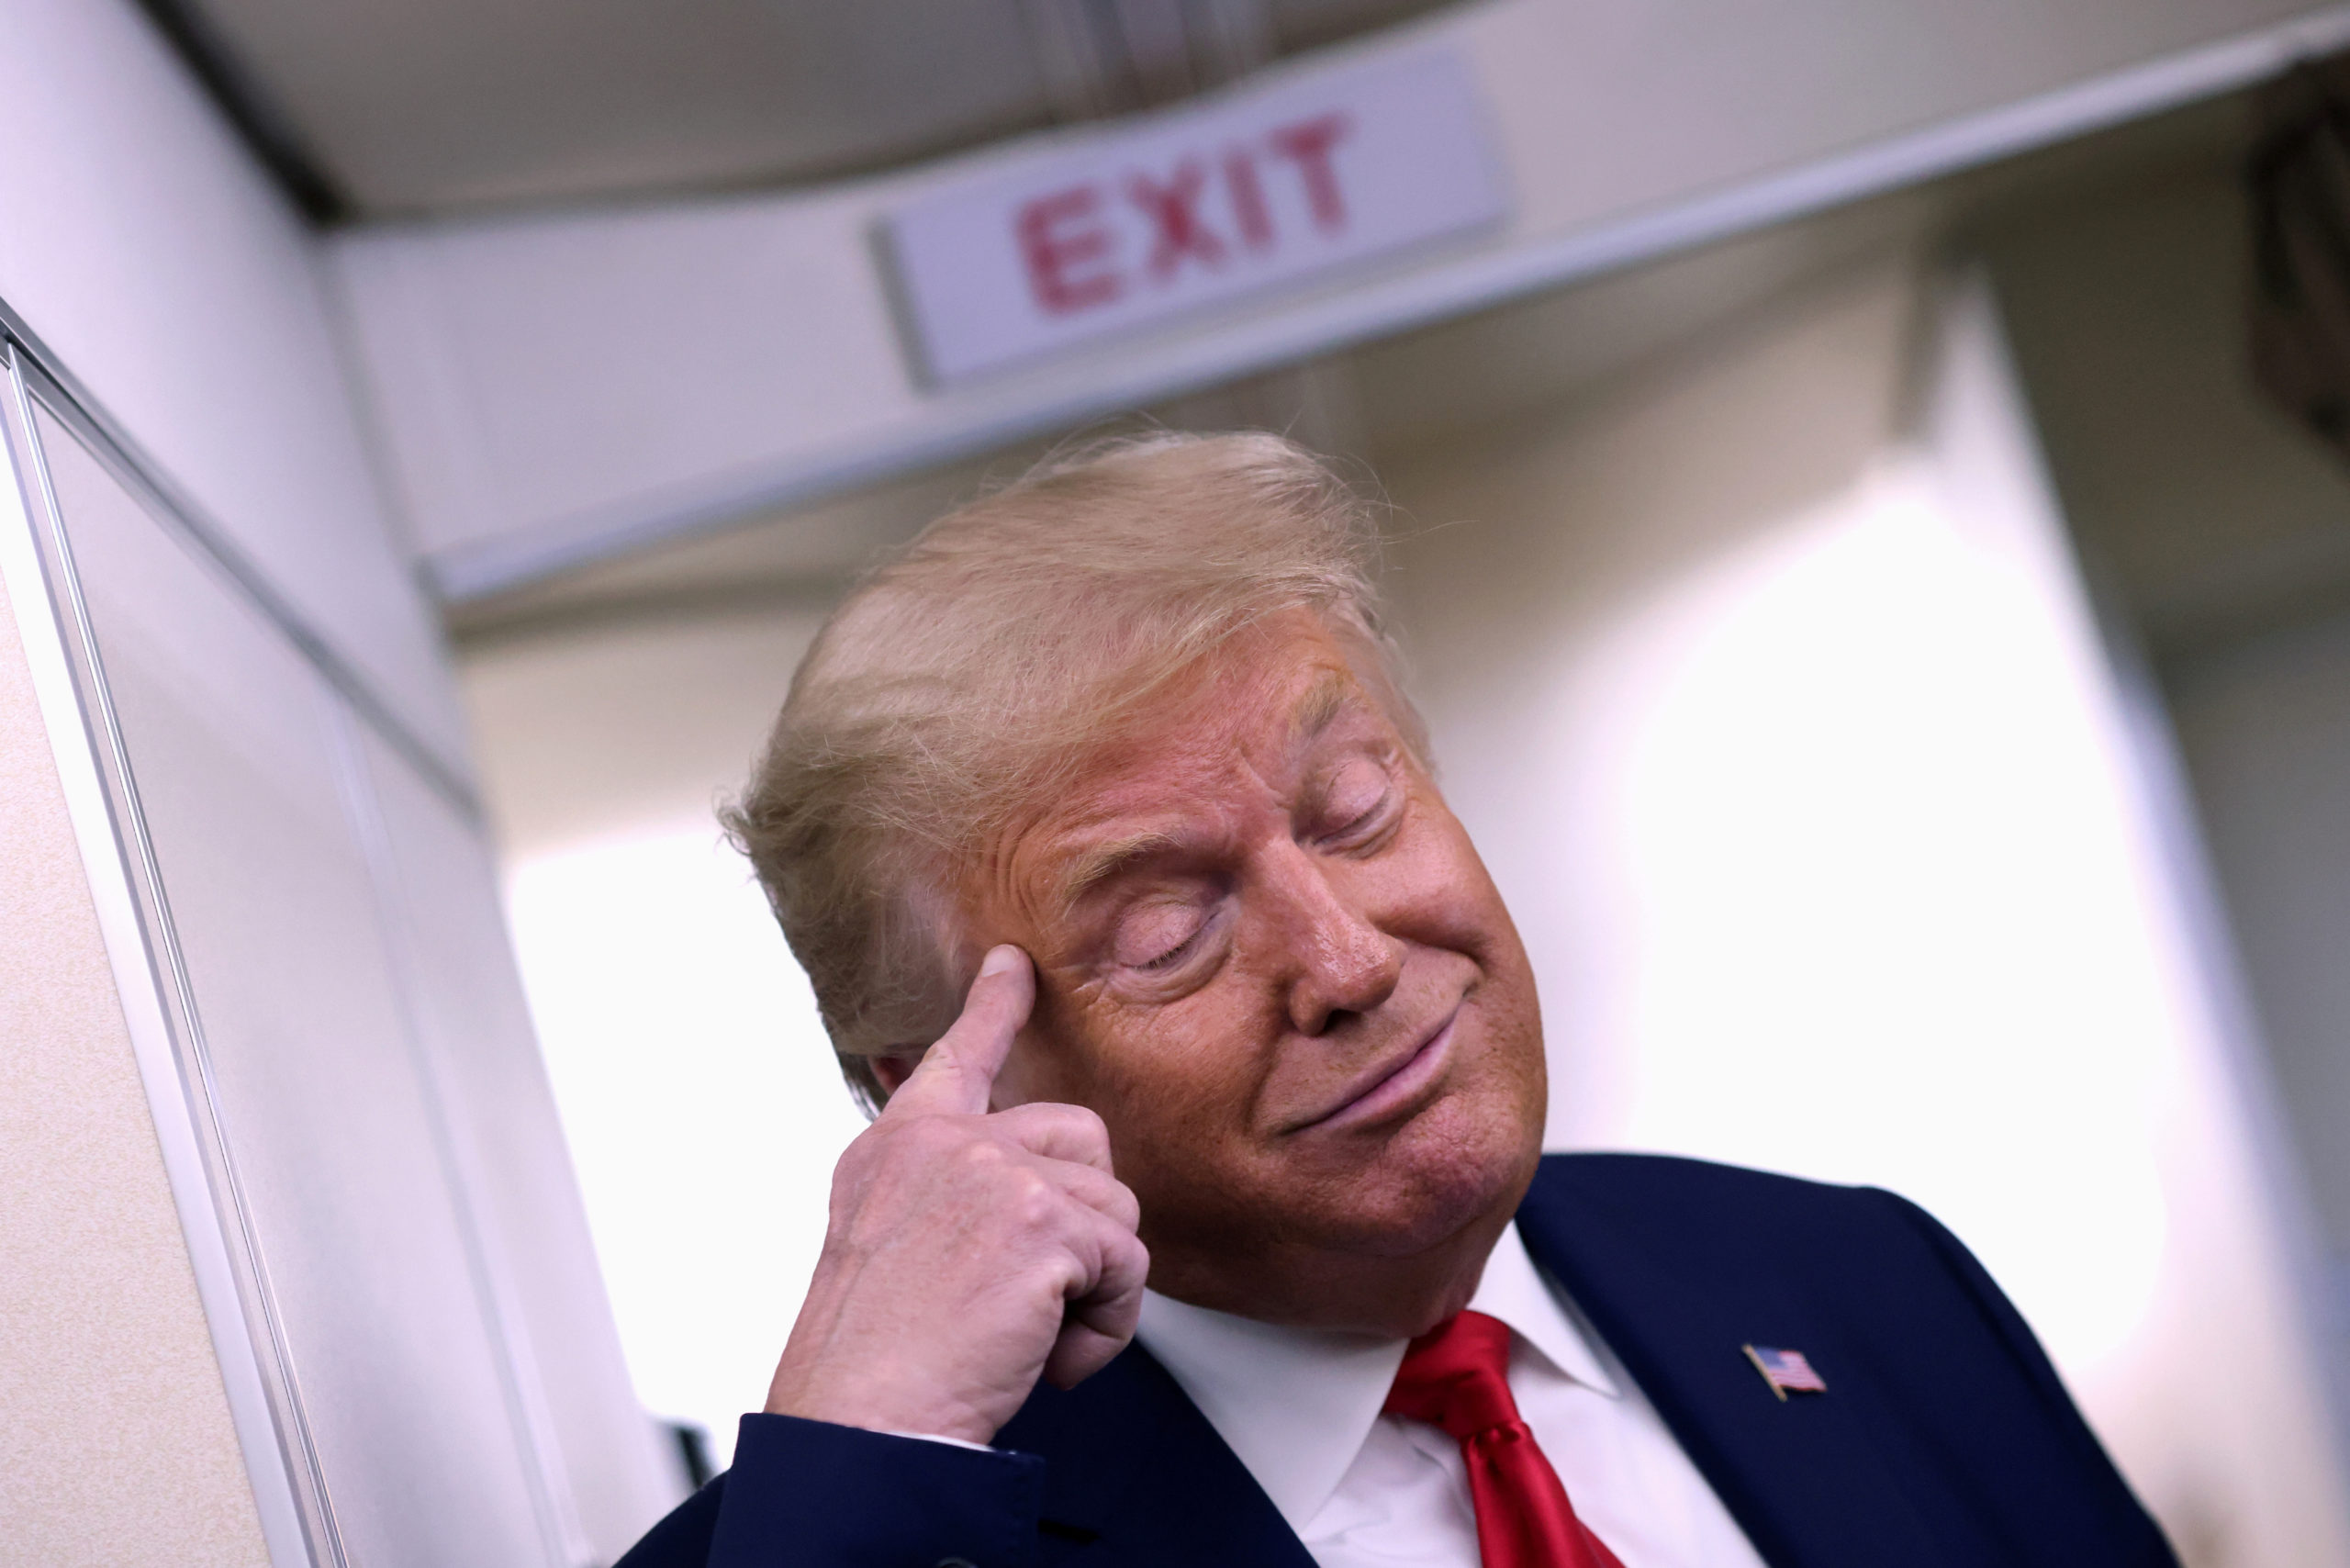 Trump Loses It At Republican Retreat And Declares He's Not Into Golden Showers